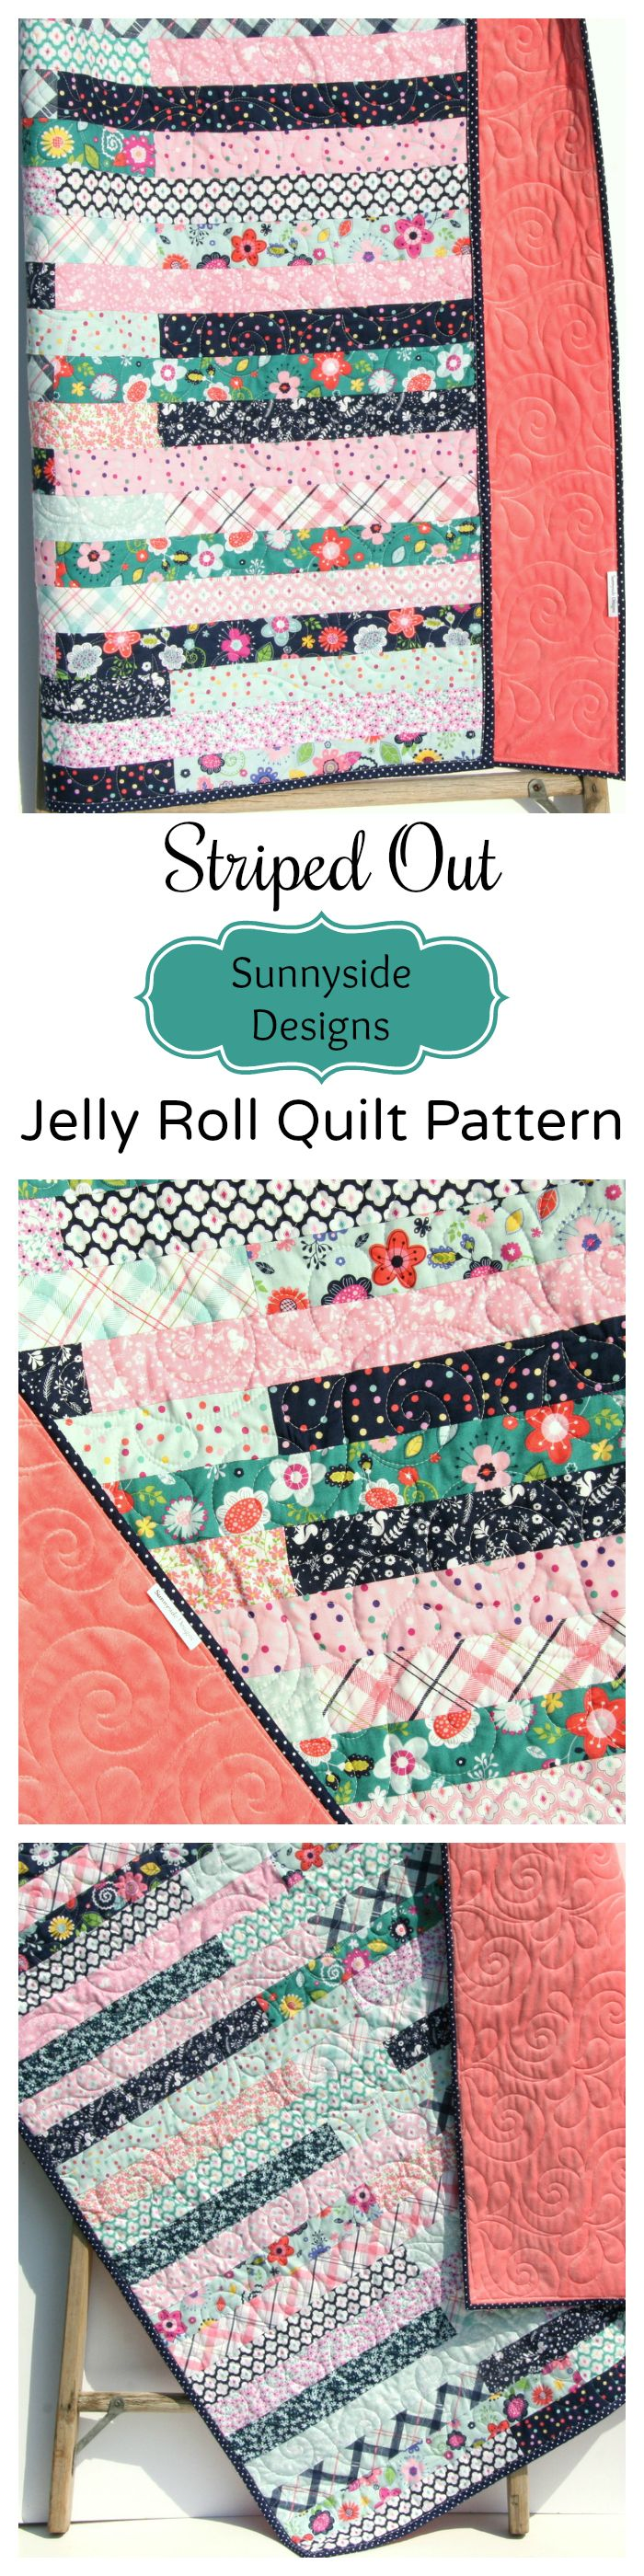 3474 best hand quilting images on pinterest quilting tips